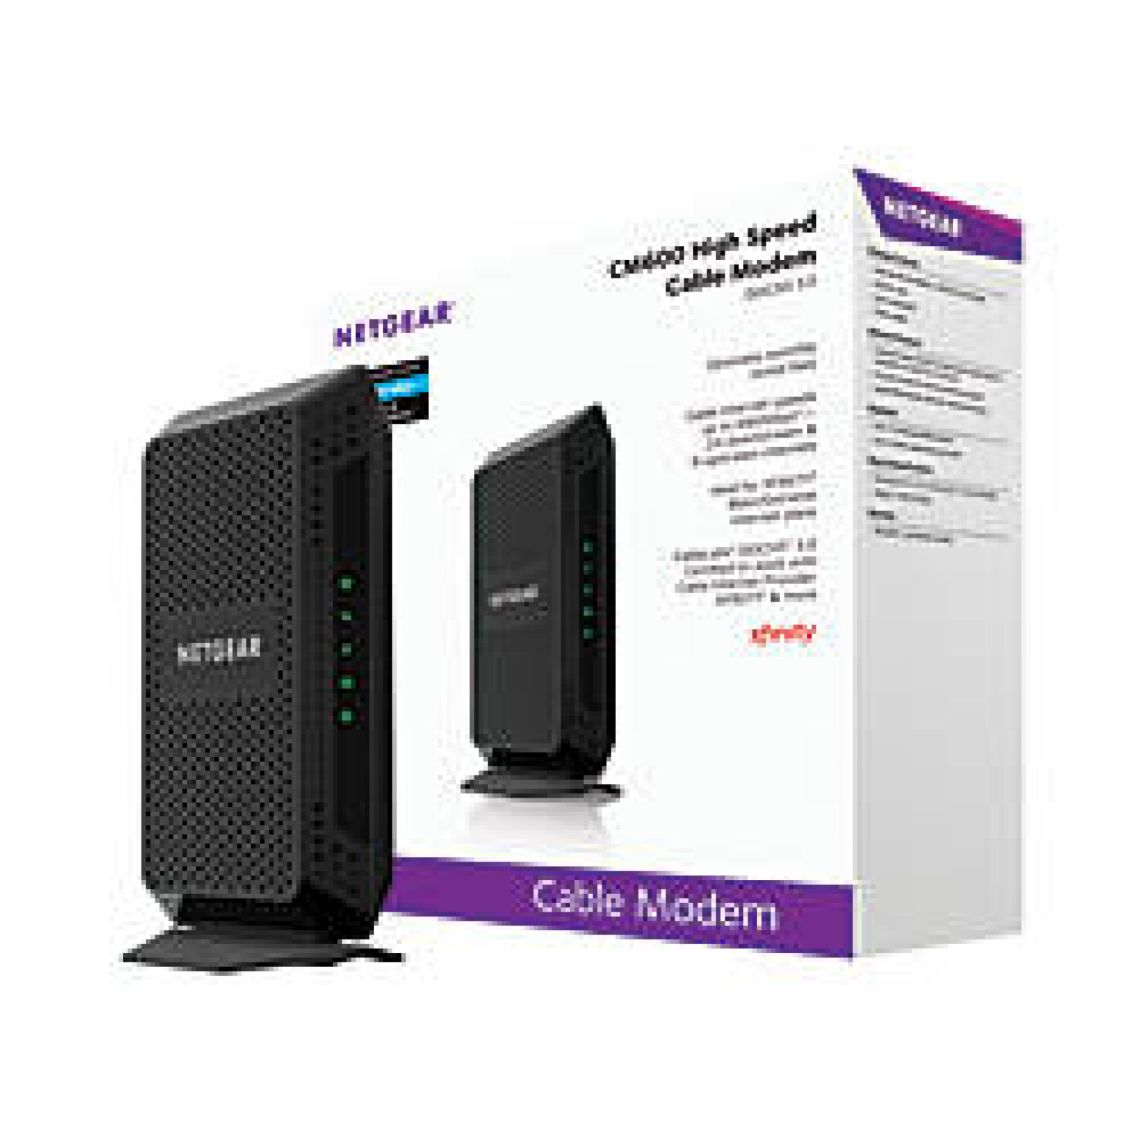 Netgear DOCSIS 3.0 High Speed Wired Gigabit Cable Modem CM600 100NAS by Office Depot & OfficeMax